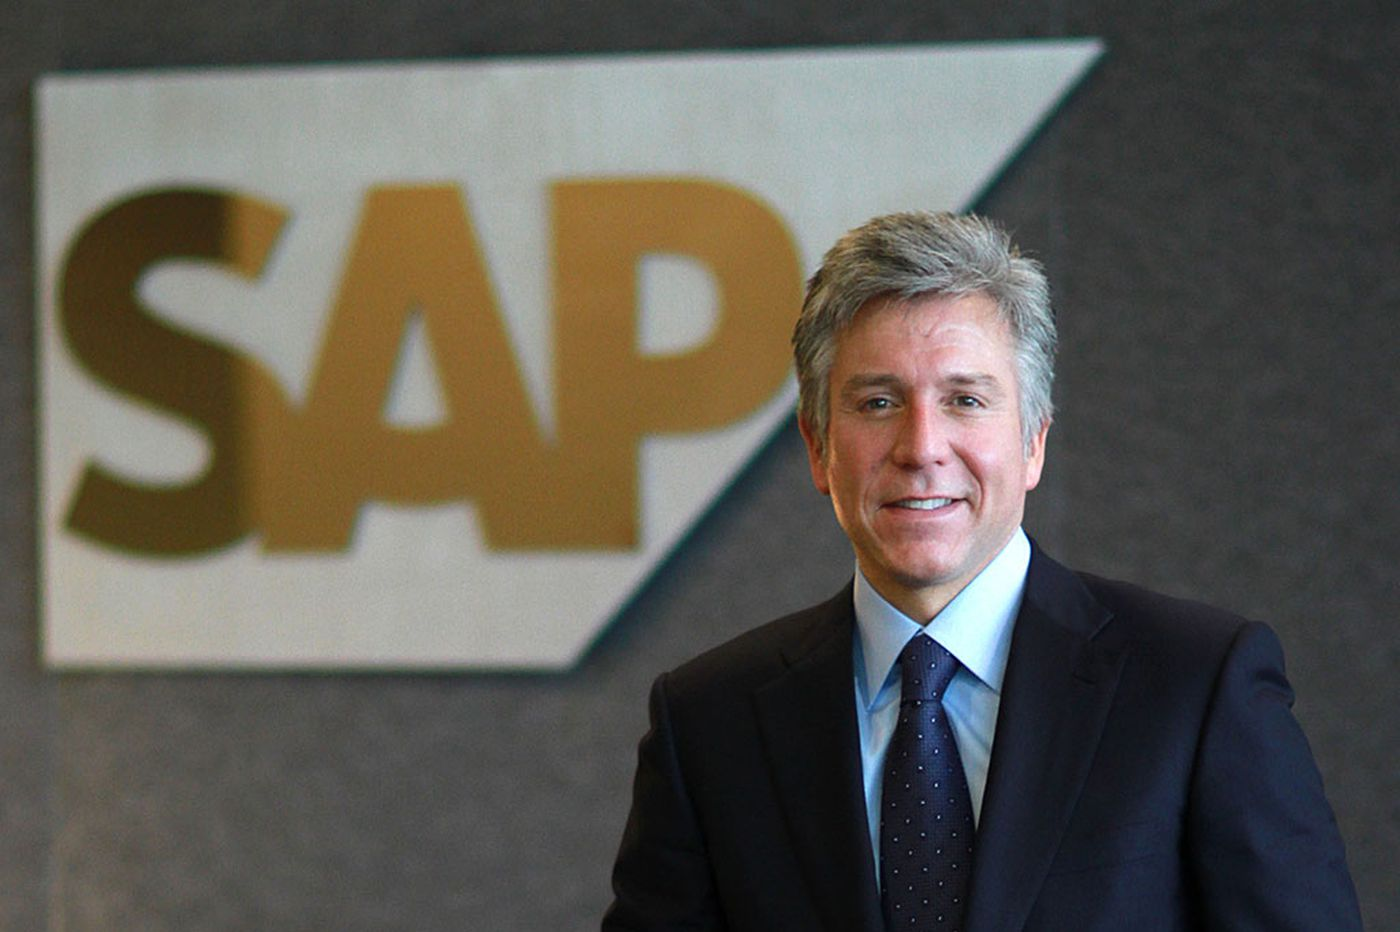 PhillyDeals: SAP 'will die' if latest system disappoints predicts company cofounder